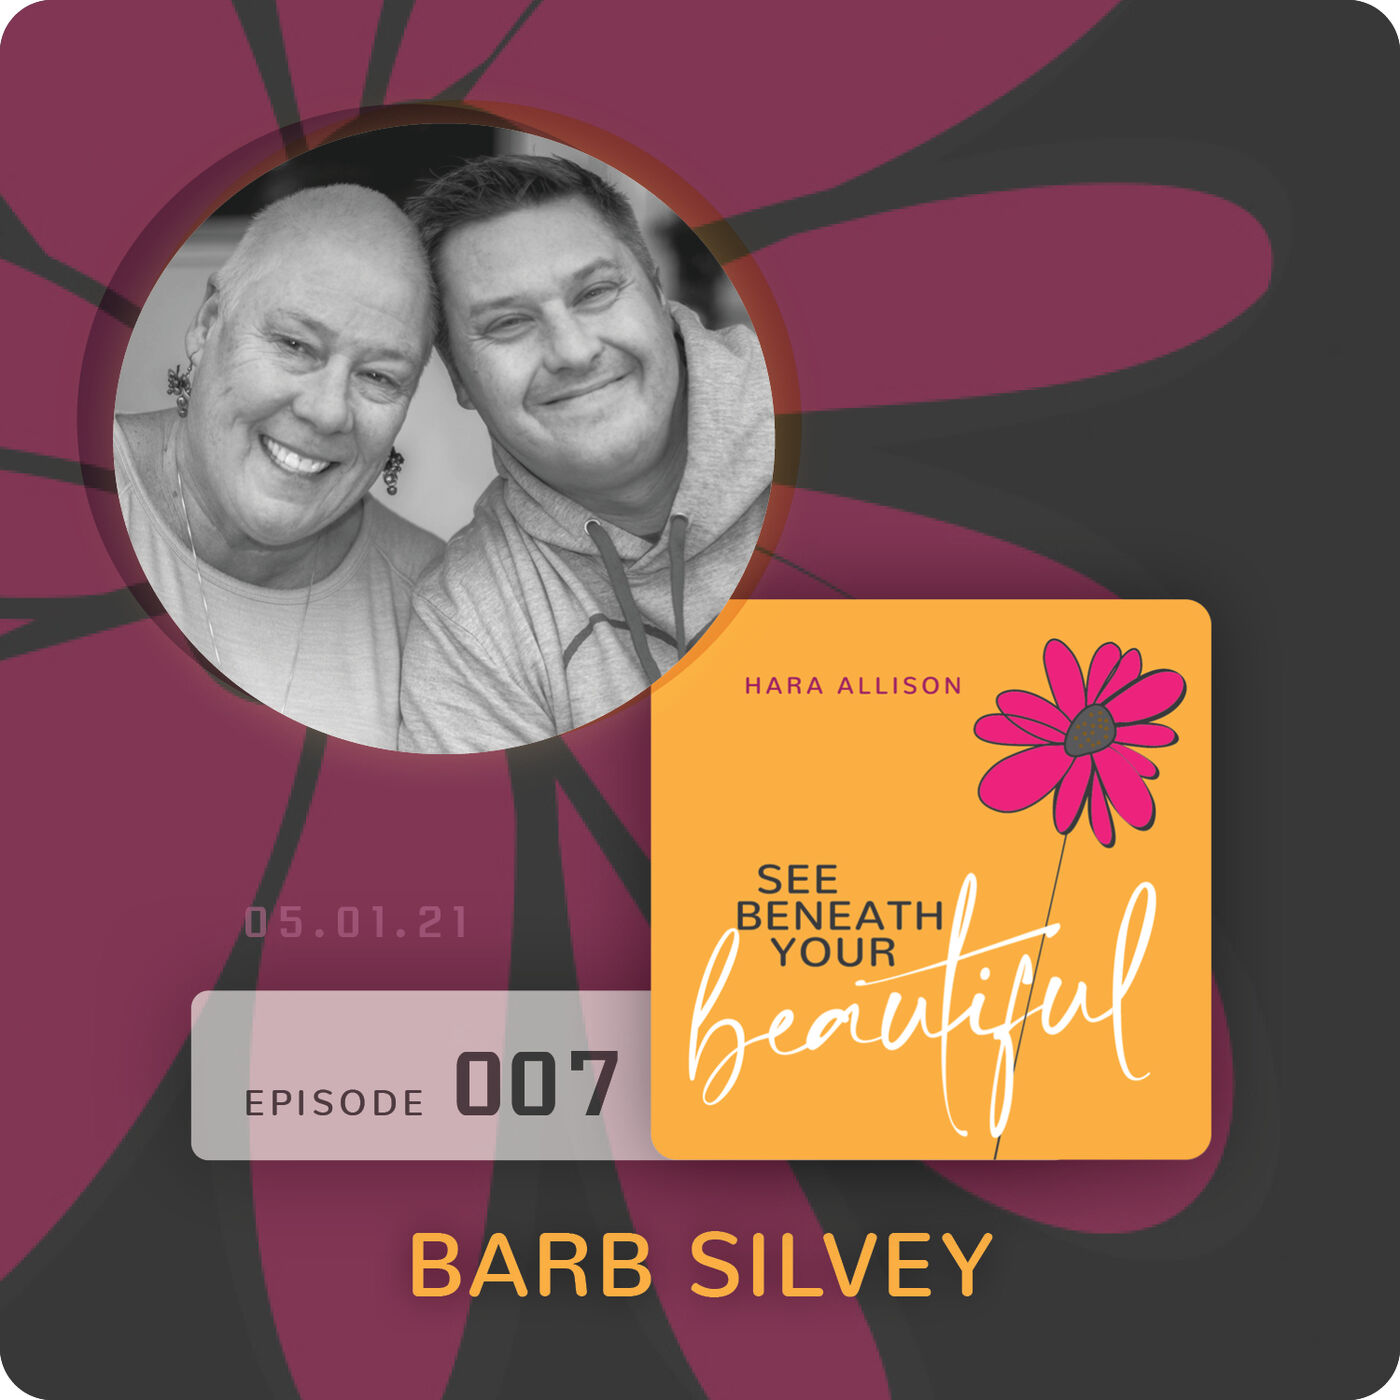 007. Barb Silvey discusses handbells, clinical depression, ADHD and fostering teens with behavior problems, learning disabilities, trauma and ptsd, while providing life-saving unconditional love and a warmhearted home